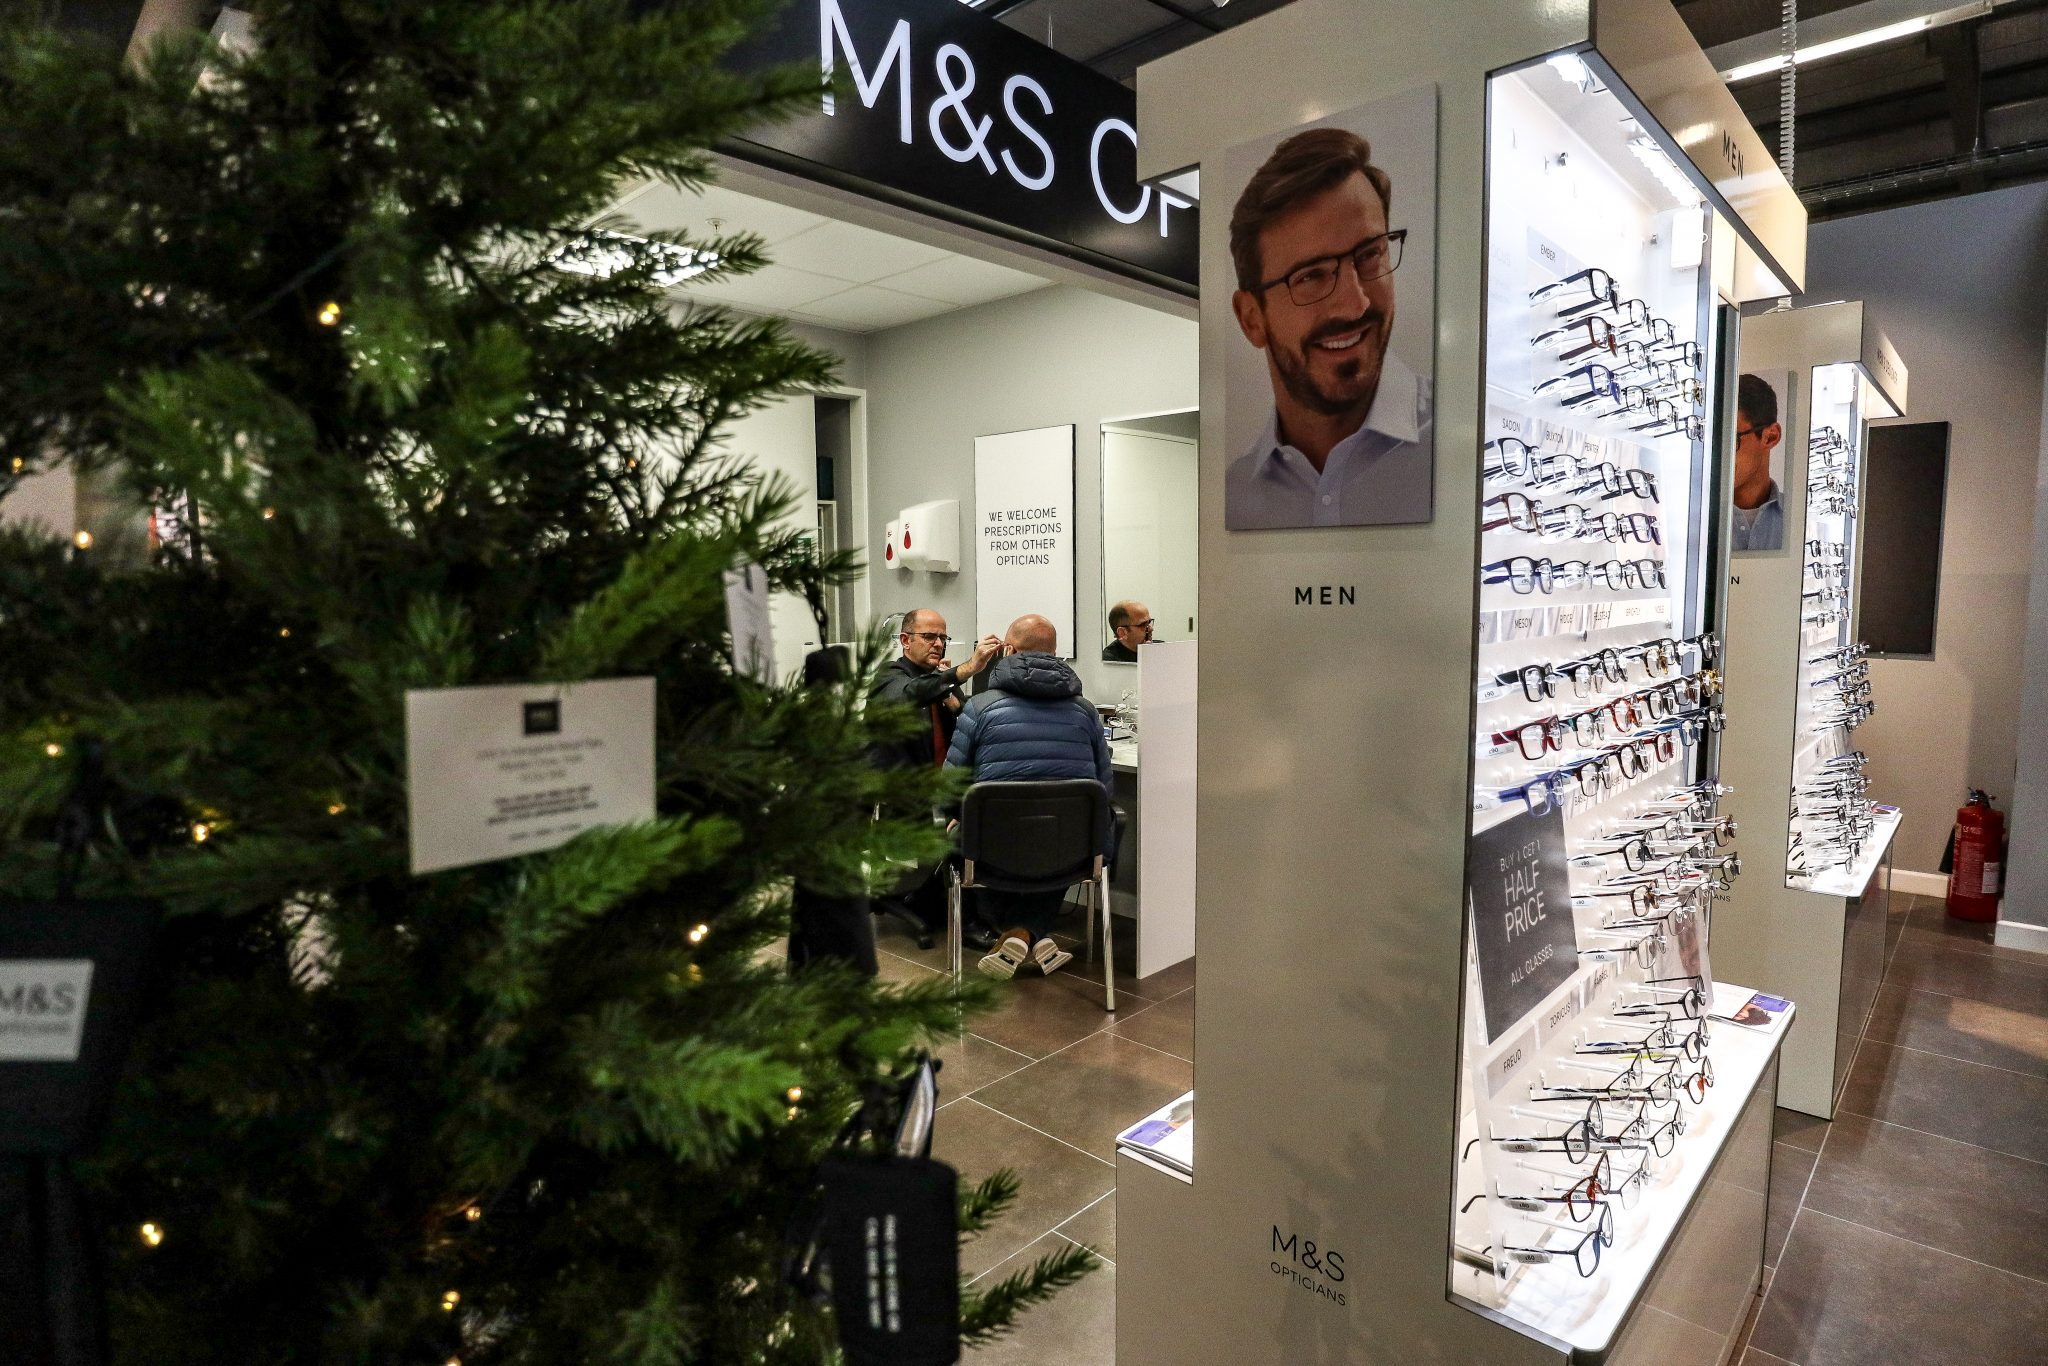 Glasses from M&S Opticians